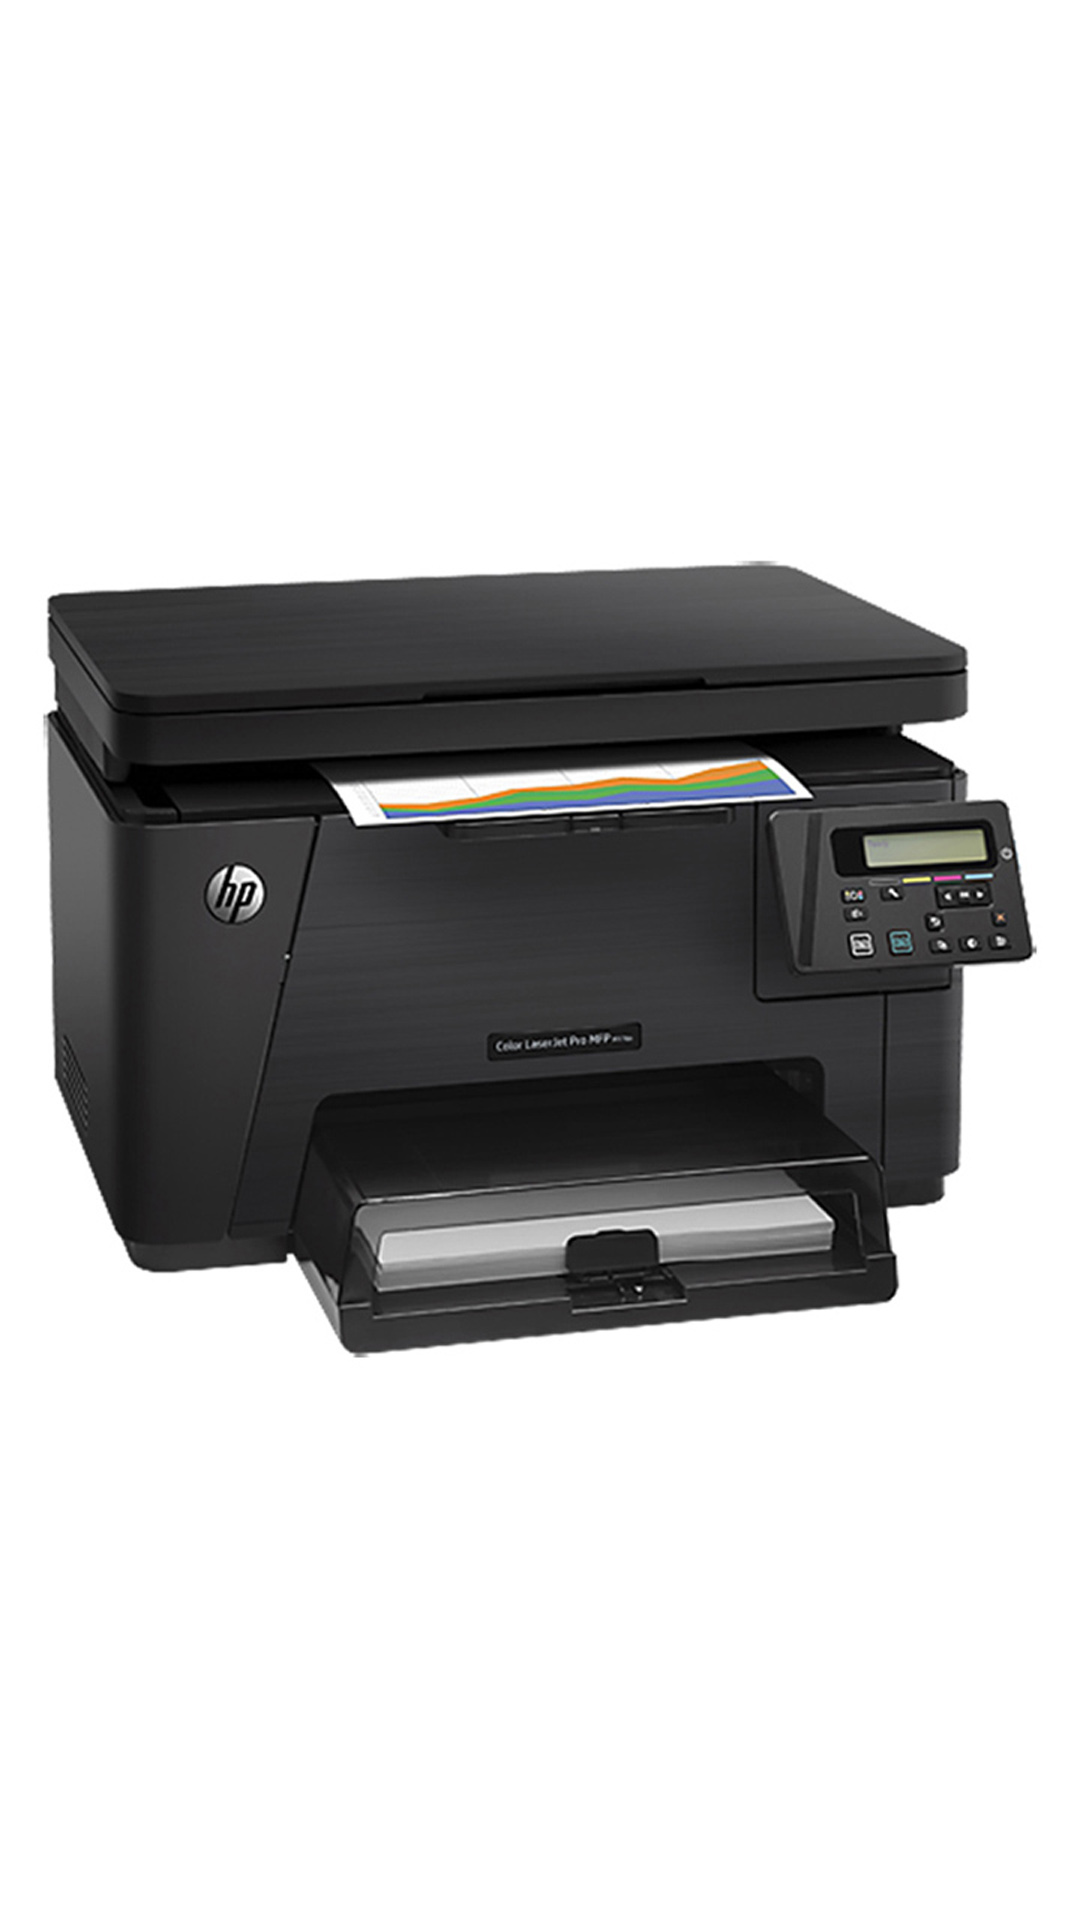 HP LaserJet Pro MFP M176n Multifunction Printer